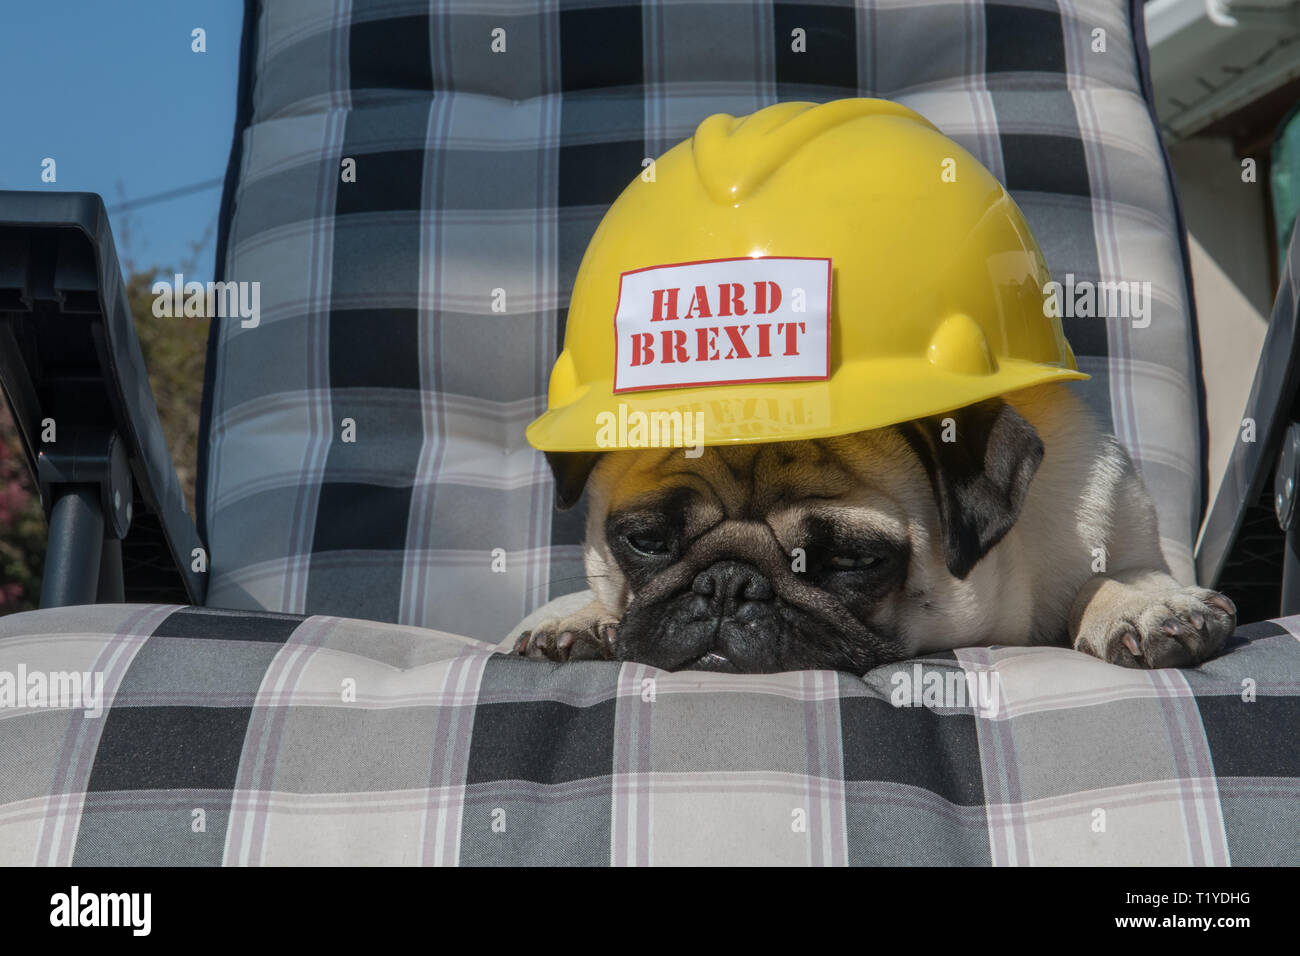 Mousehole, Cornwall, UK. 29th Mar, 2019. Brexit. Brext day comes and goes, and Brexit boredom sets in in Cornwall, as Titan the pug has just had enough. Credit: Simon Maycock/Alamy Live News Stock Photo